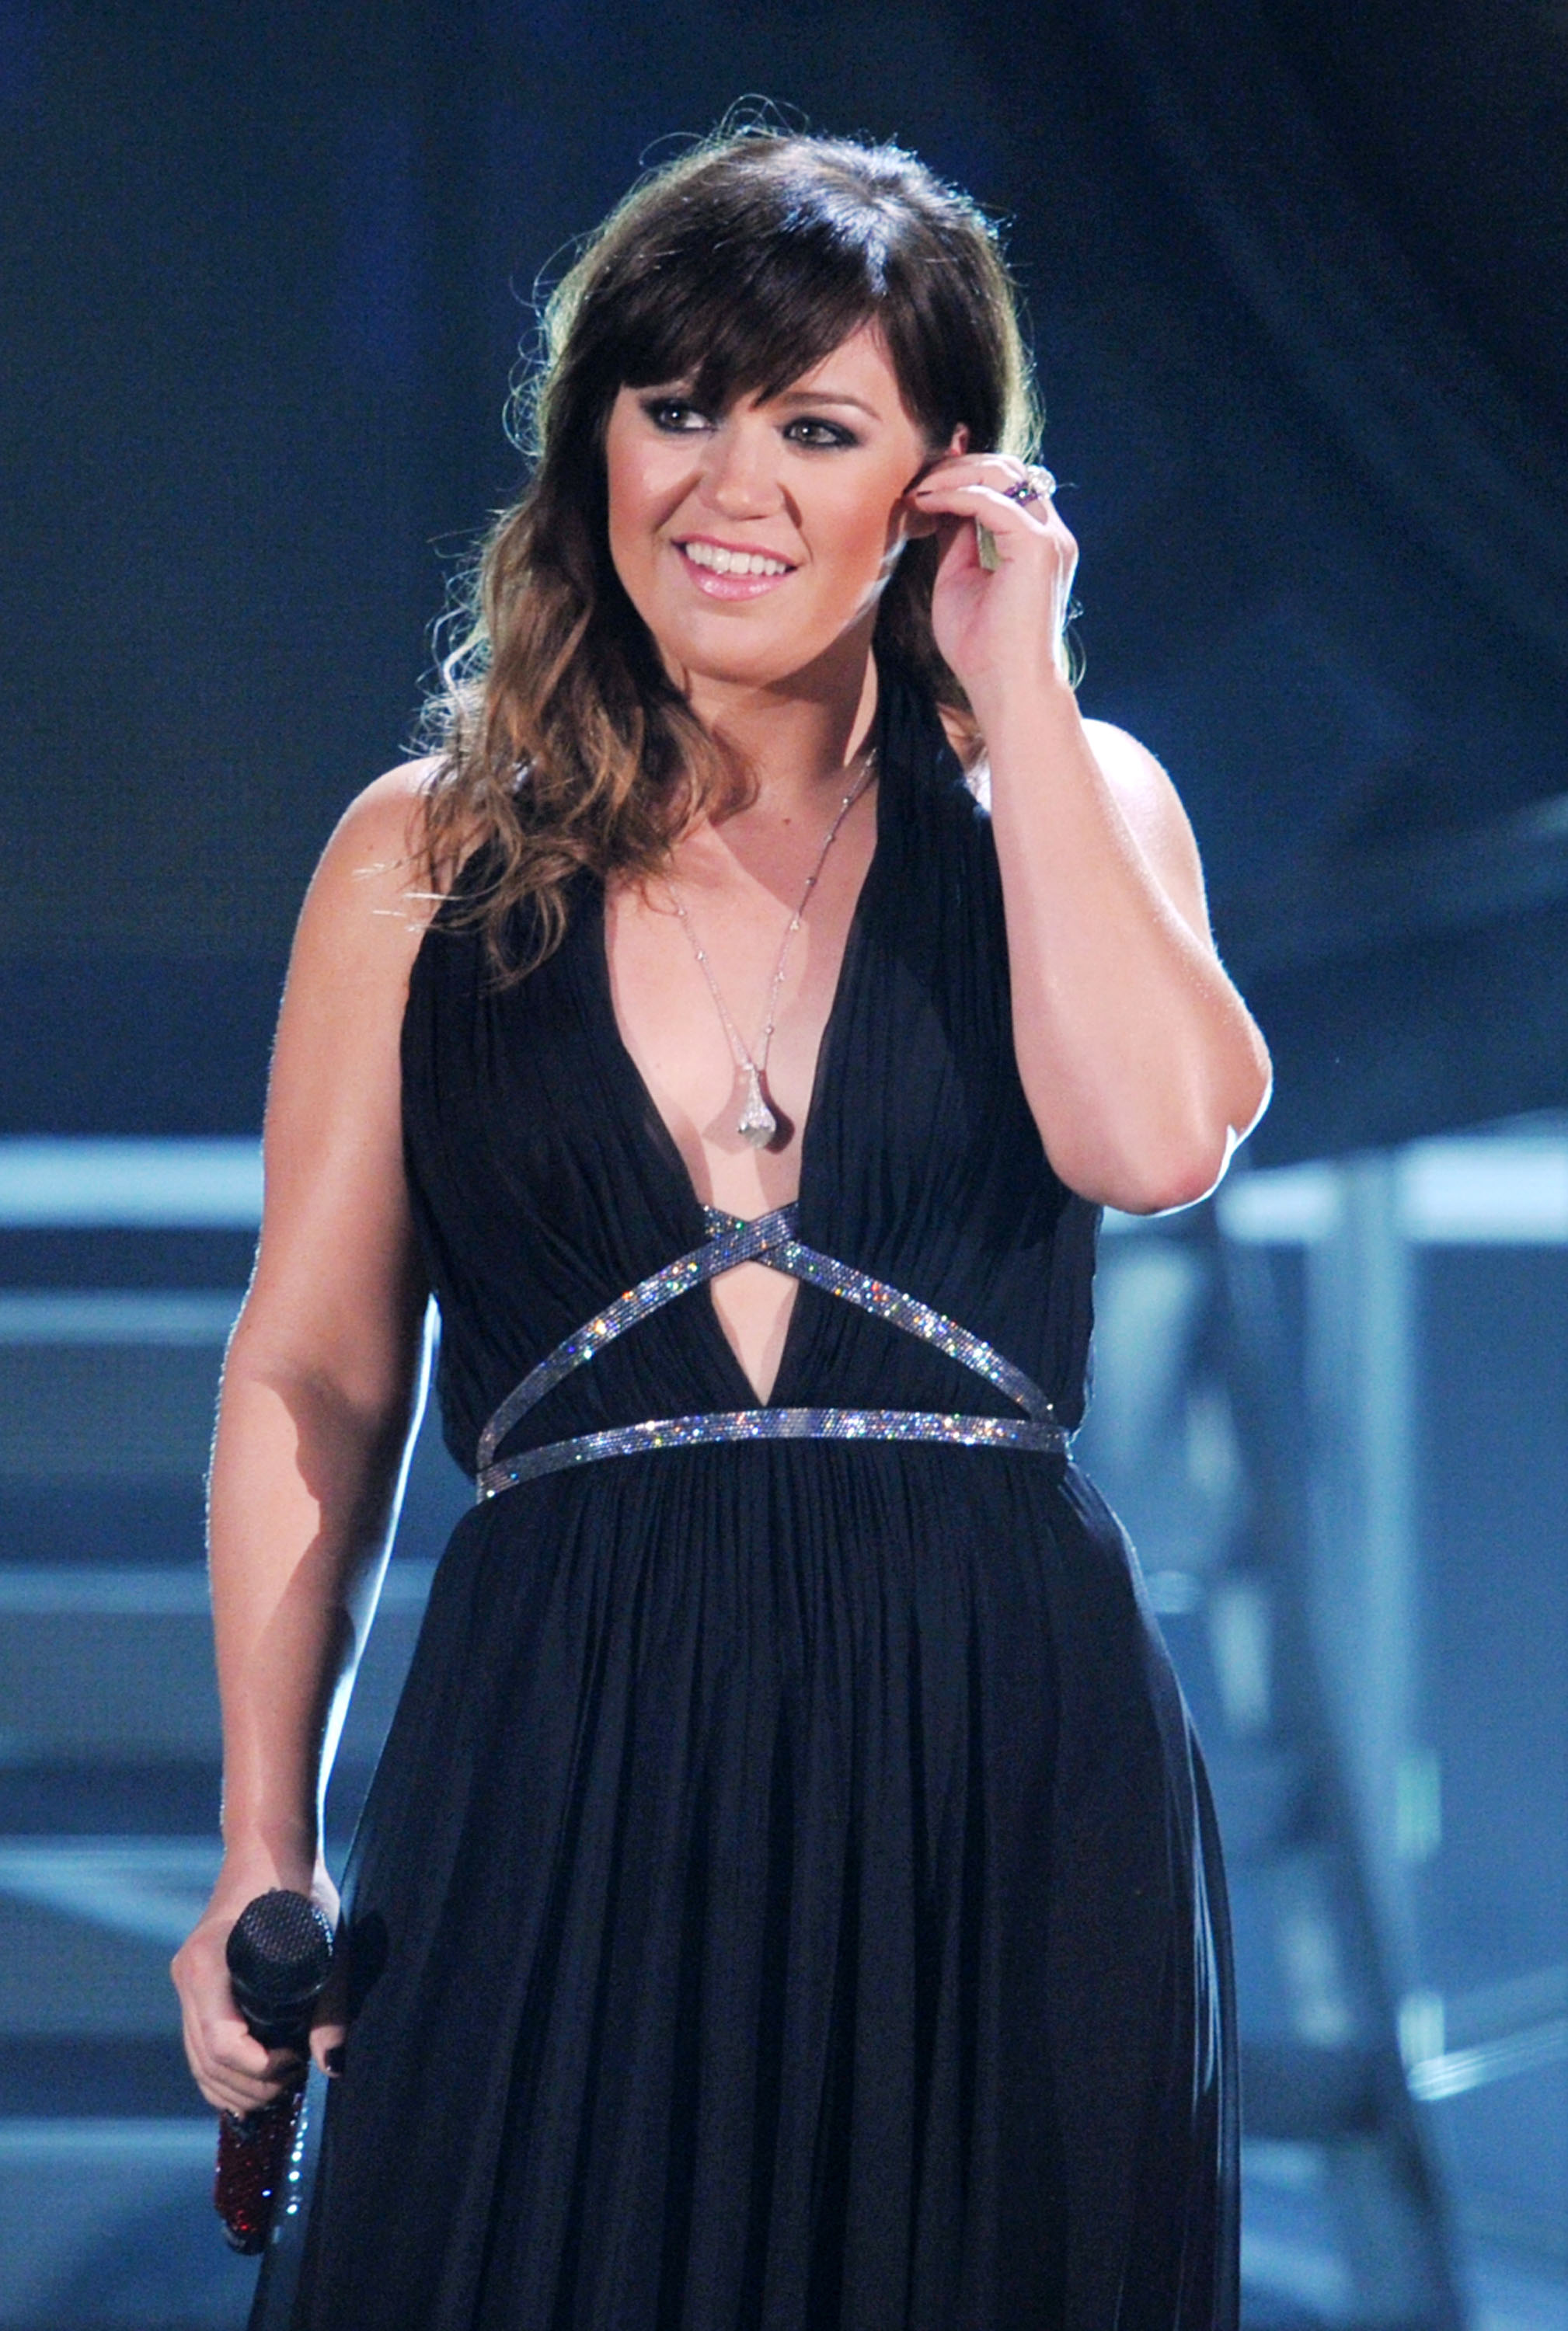 Kelly Clarkson performed at the Grammys.